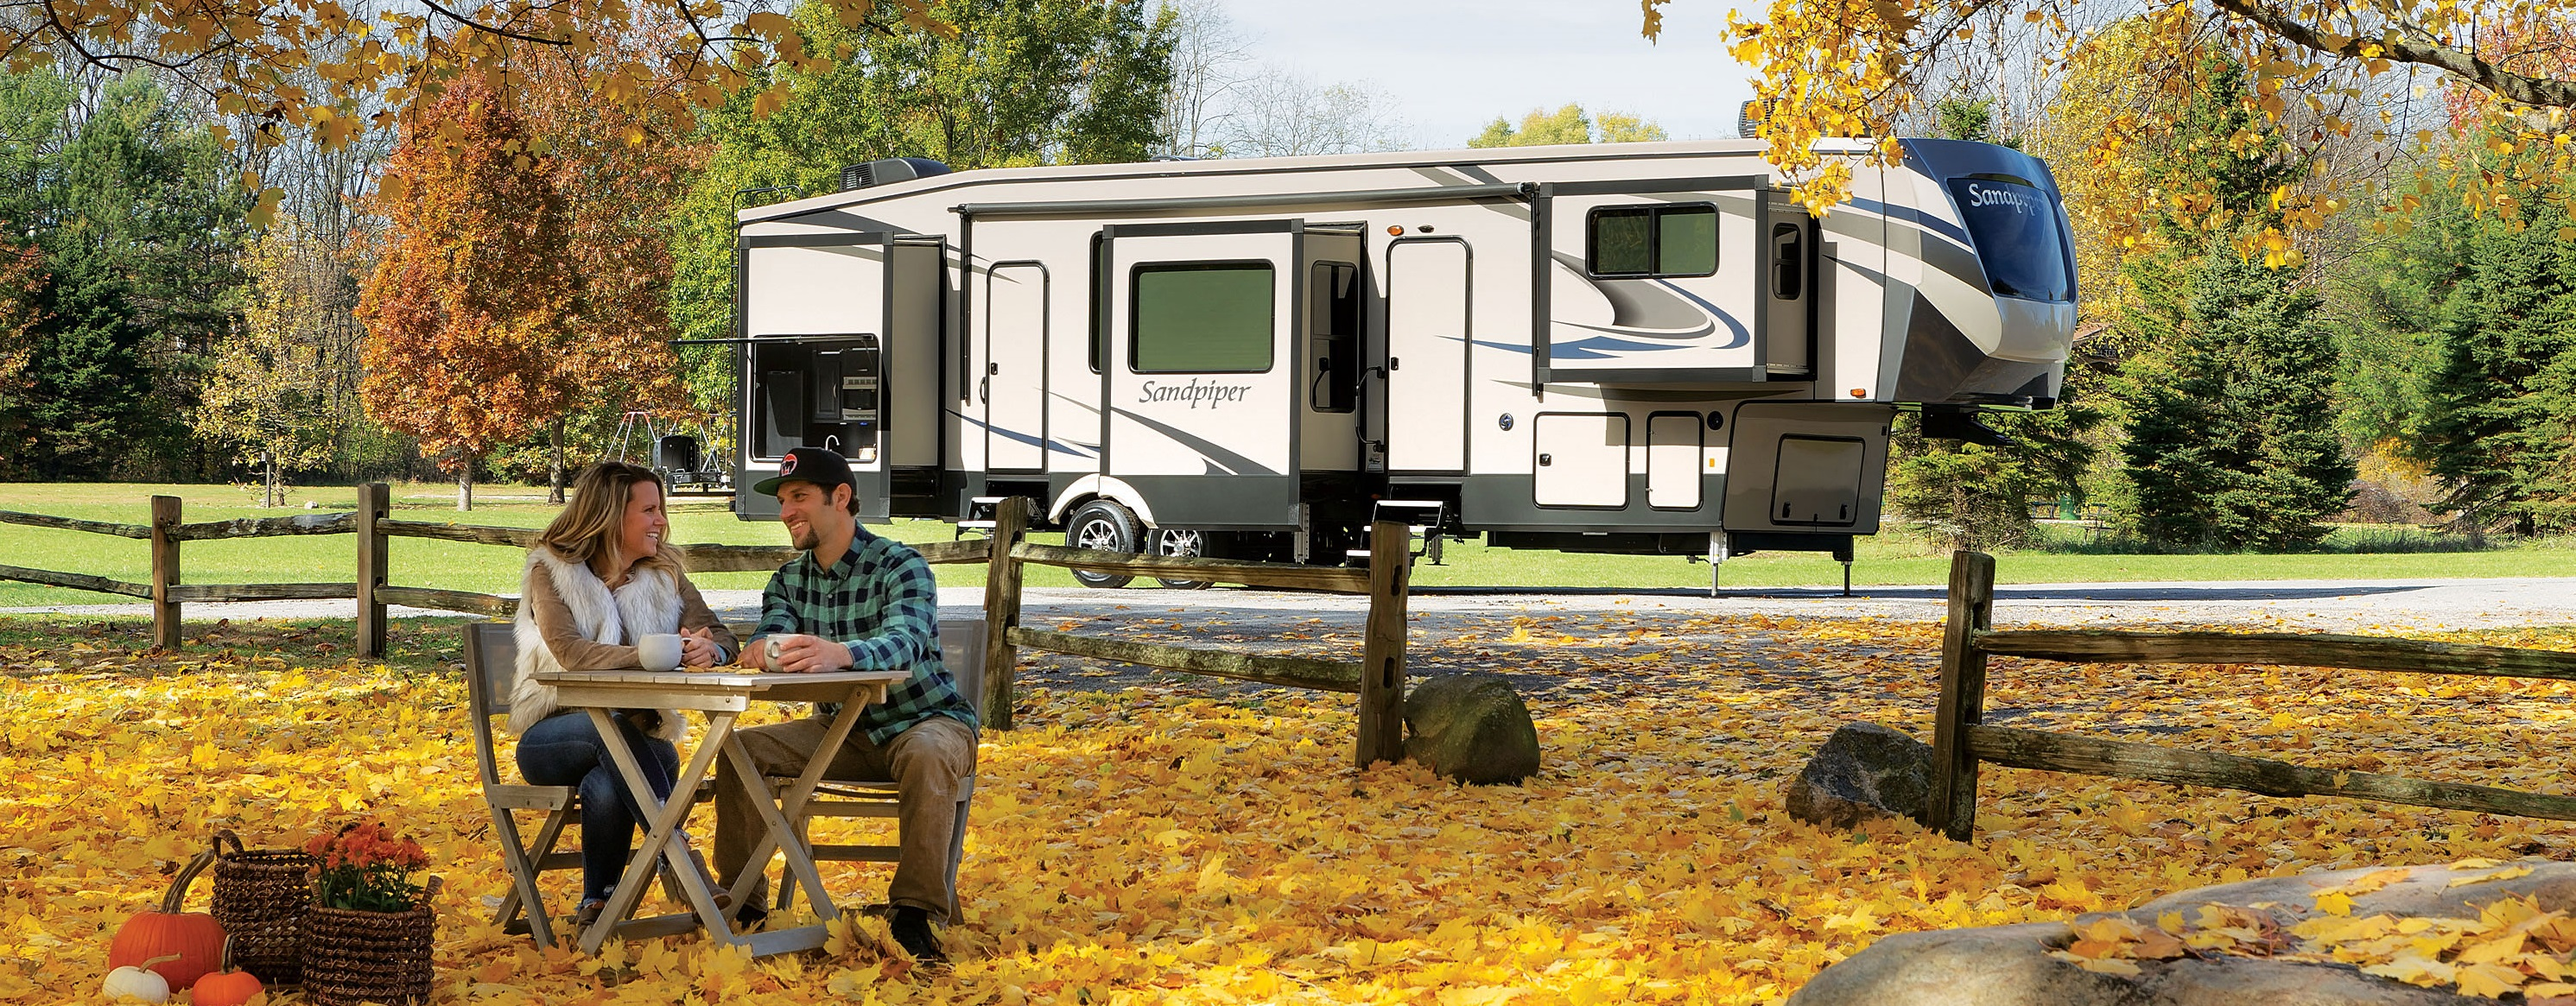 About Youngblood Powersports RV Sales & Service